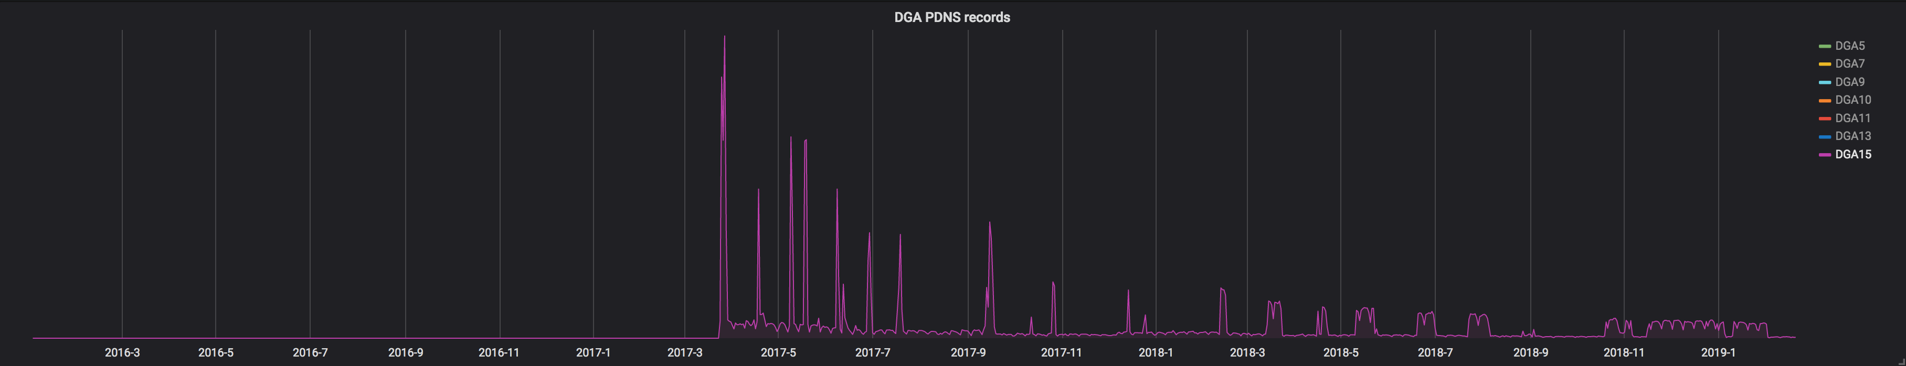 Picture4_DGA PDNS Records.png